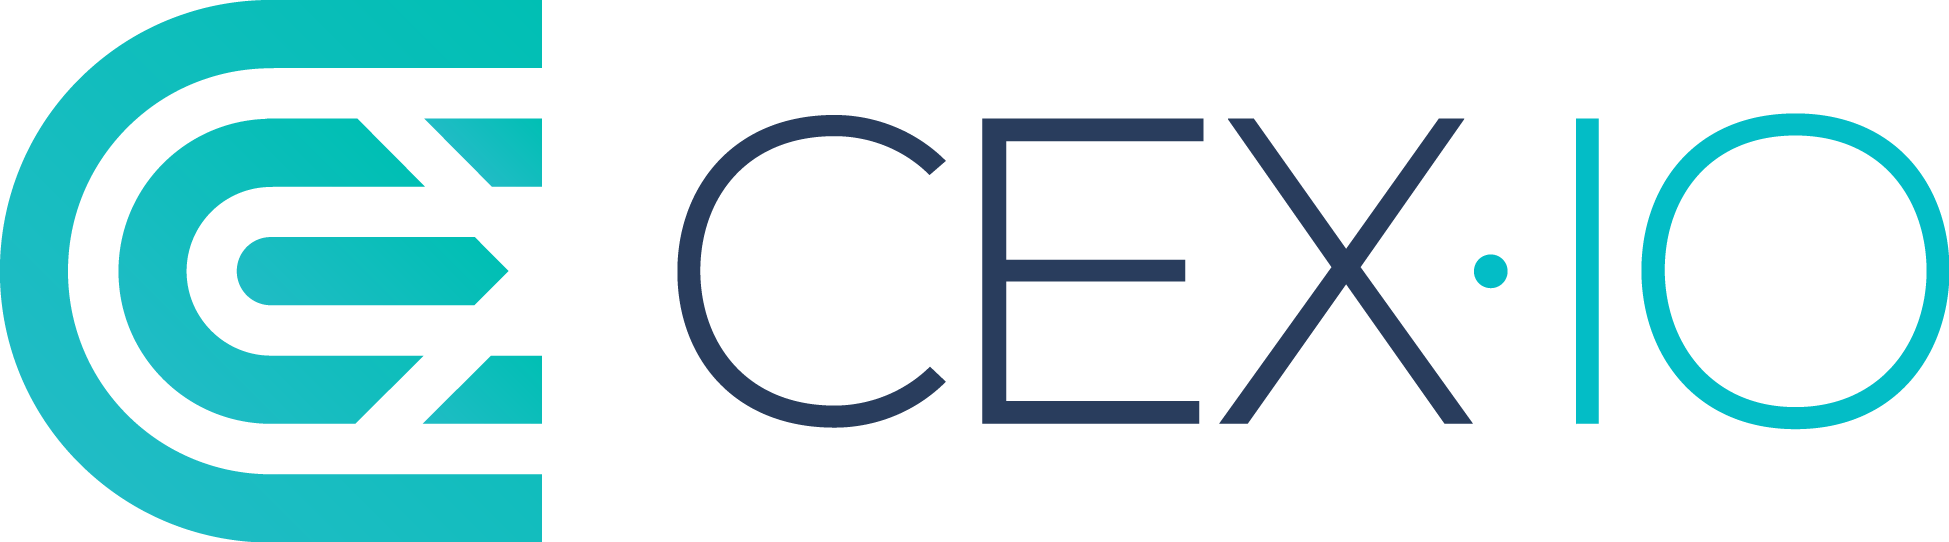 CEX.io exchange logo